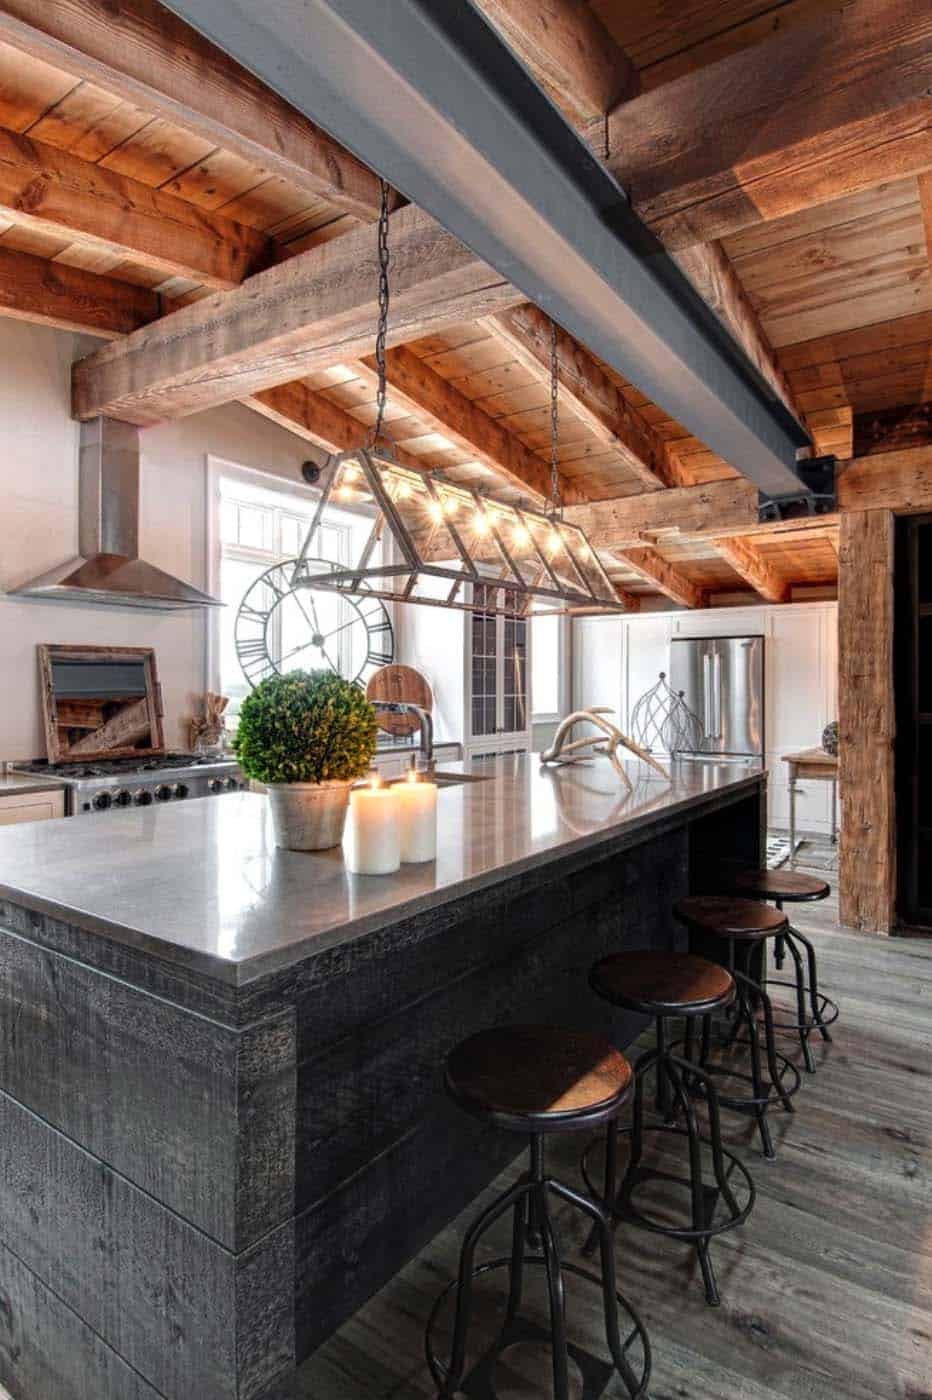 45 most pinteresting kitchens featured on 1 kindesign for 2016 - Modern rustic kitchen cabinets ...